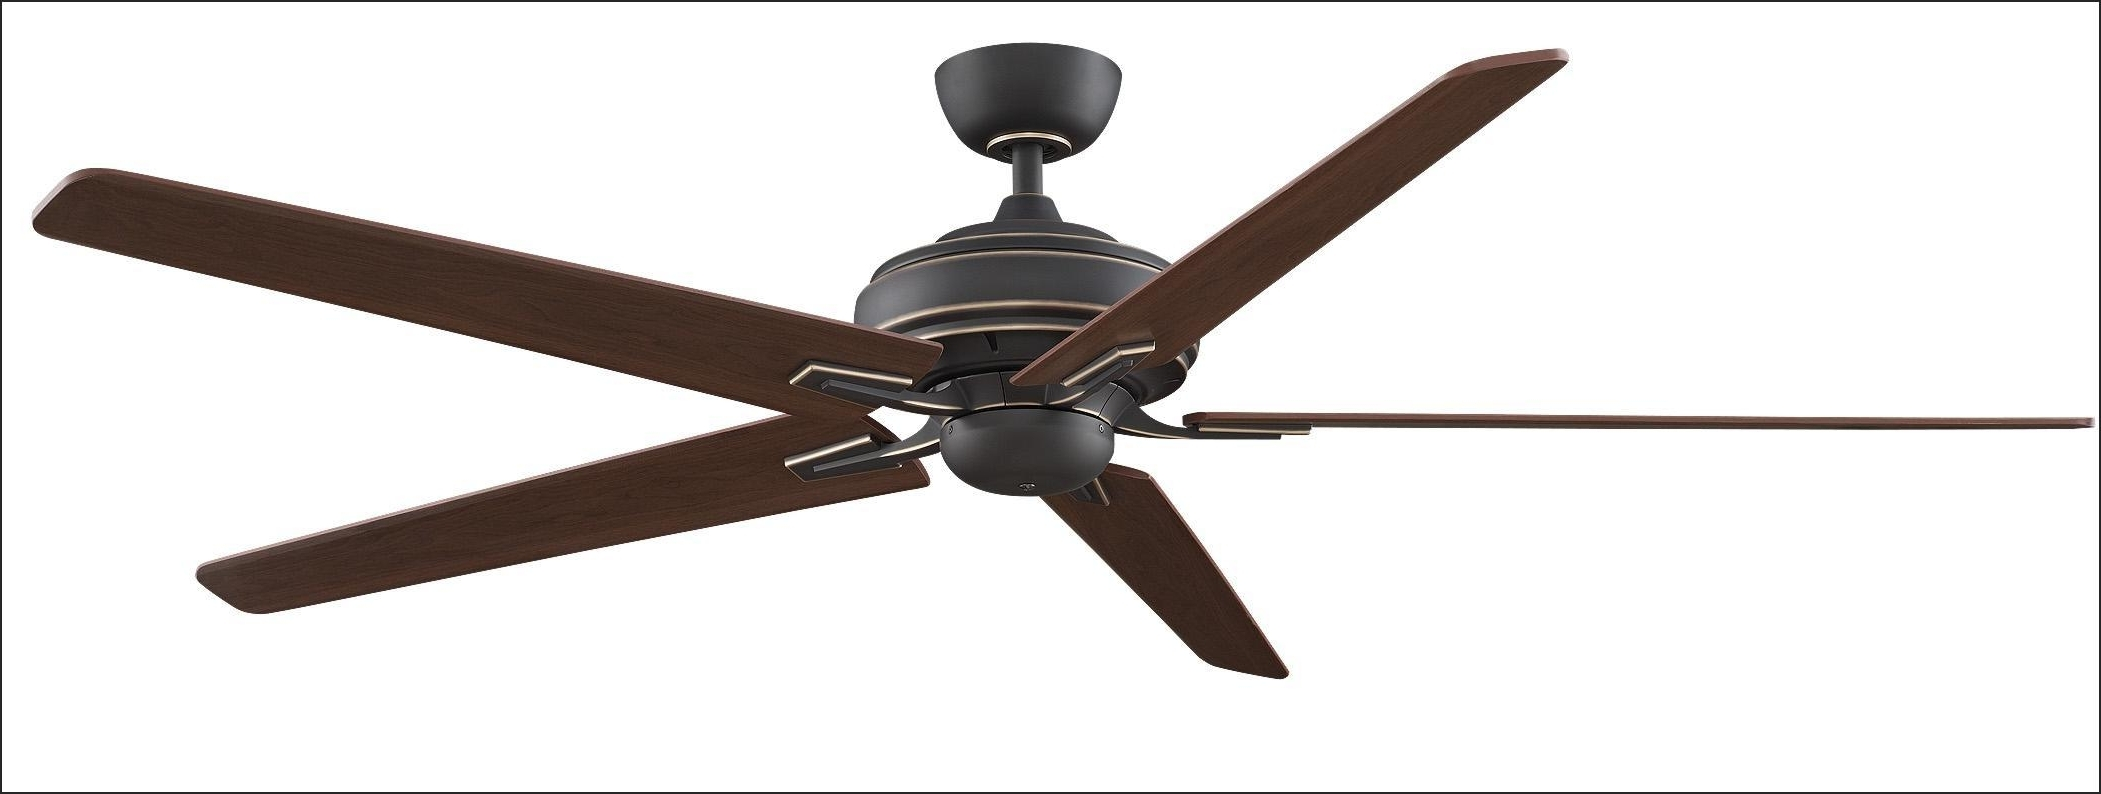 Furniture : Bronze Ceiling Fan Best Of 60 Ceiling Fans Without With Regard To Latest Outdoor Ceiling Fans Without Lights (View 6 of 20)